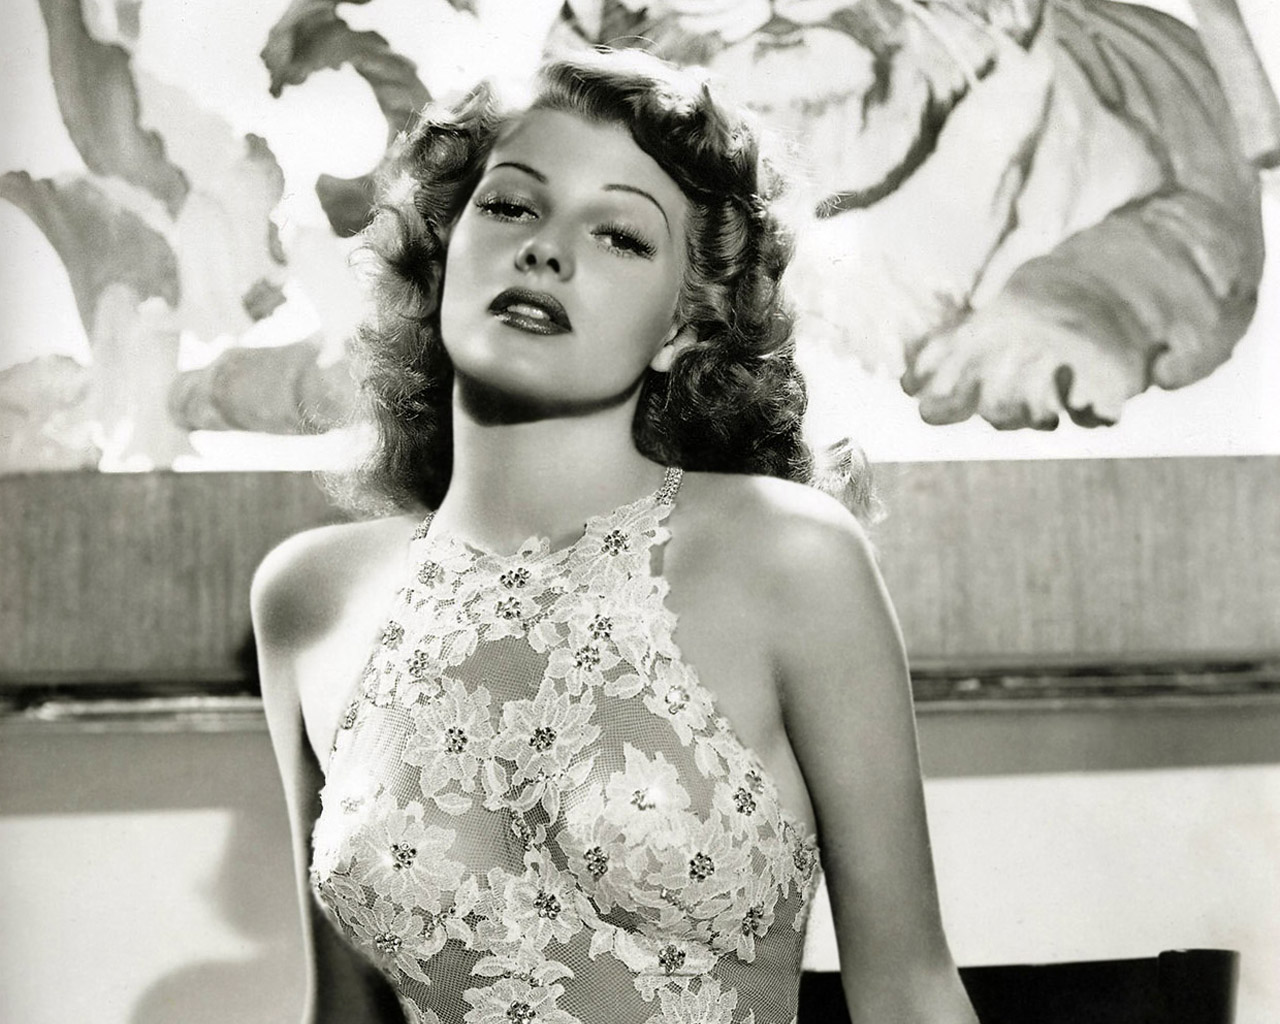 HULK PRESENTS ITS NOT JUST WHO BUT WHEN RITA HAYWORTH 1941